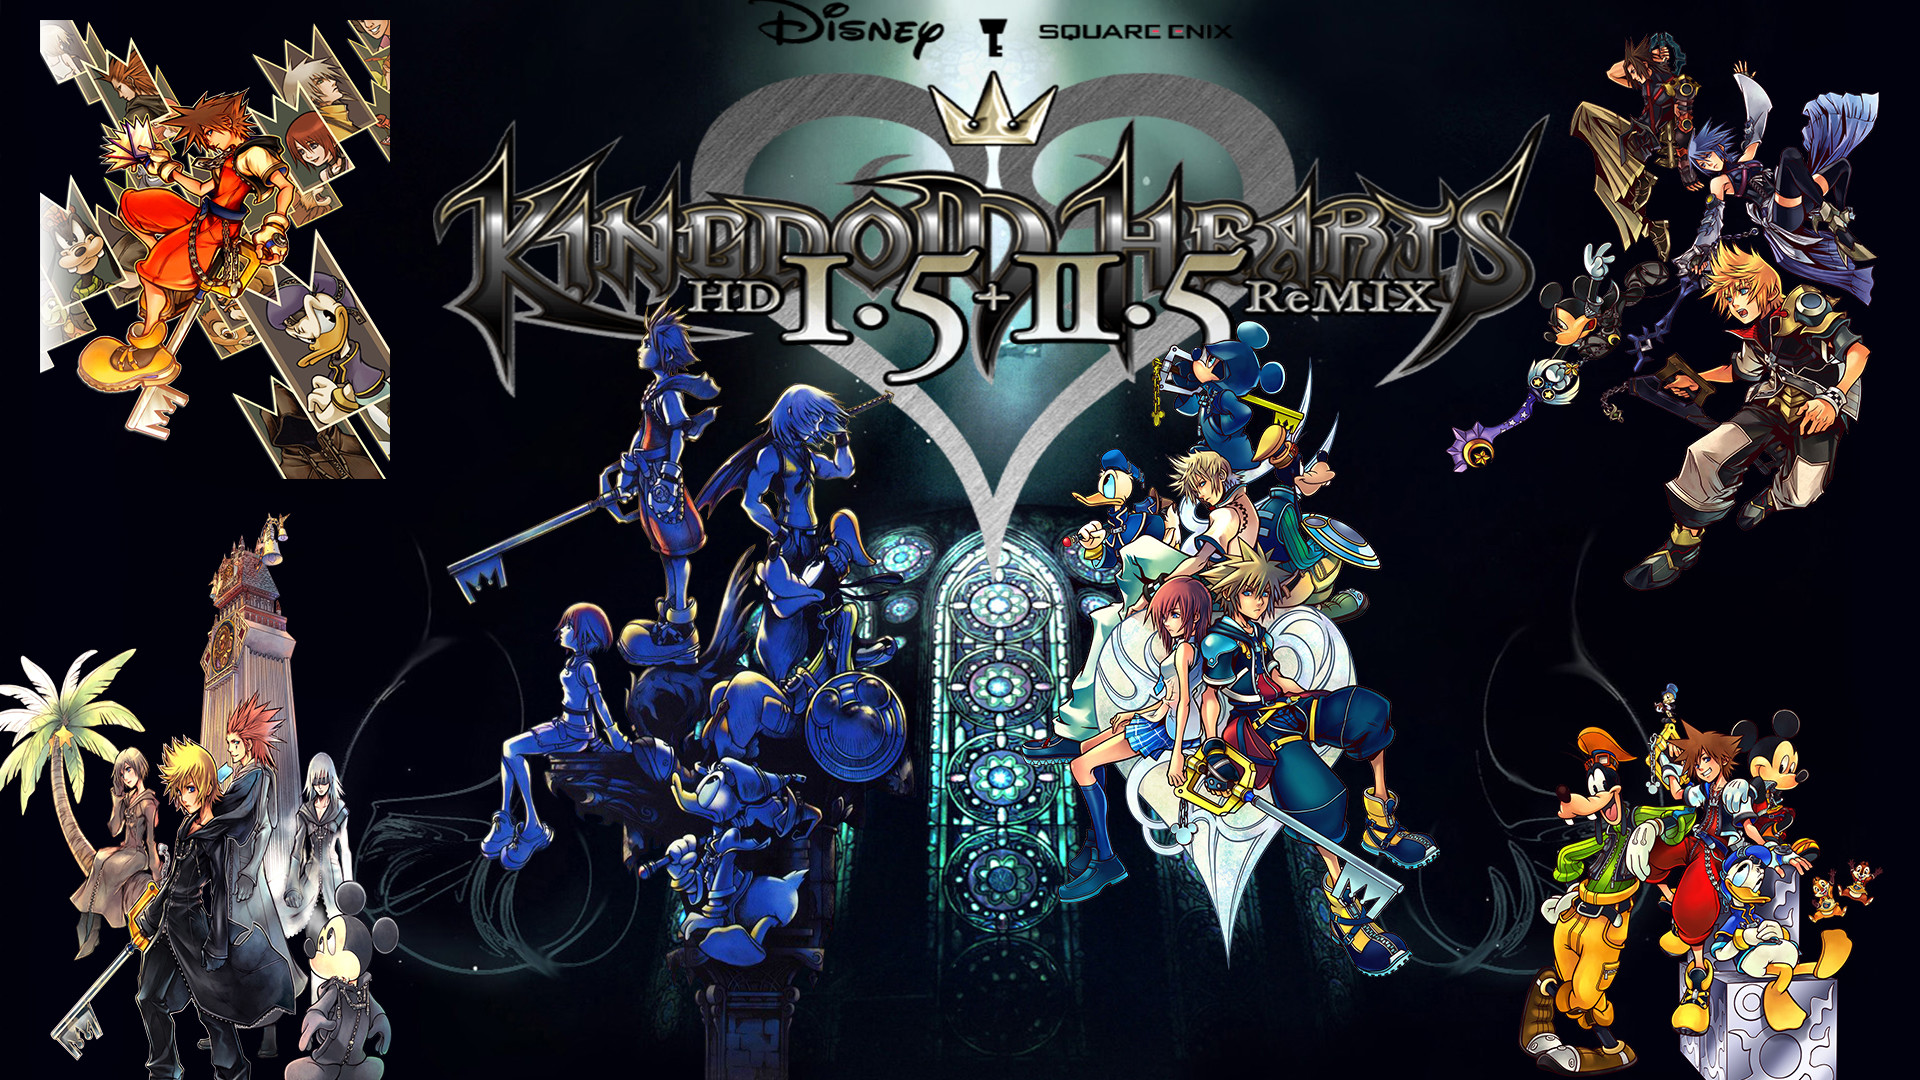 Kingdom Hearts 2 Final Mix Wallpaper 72 Images